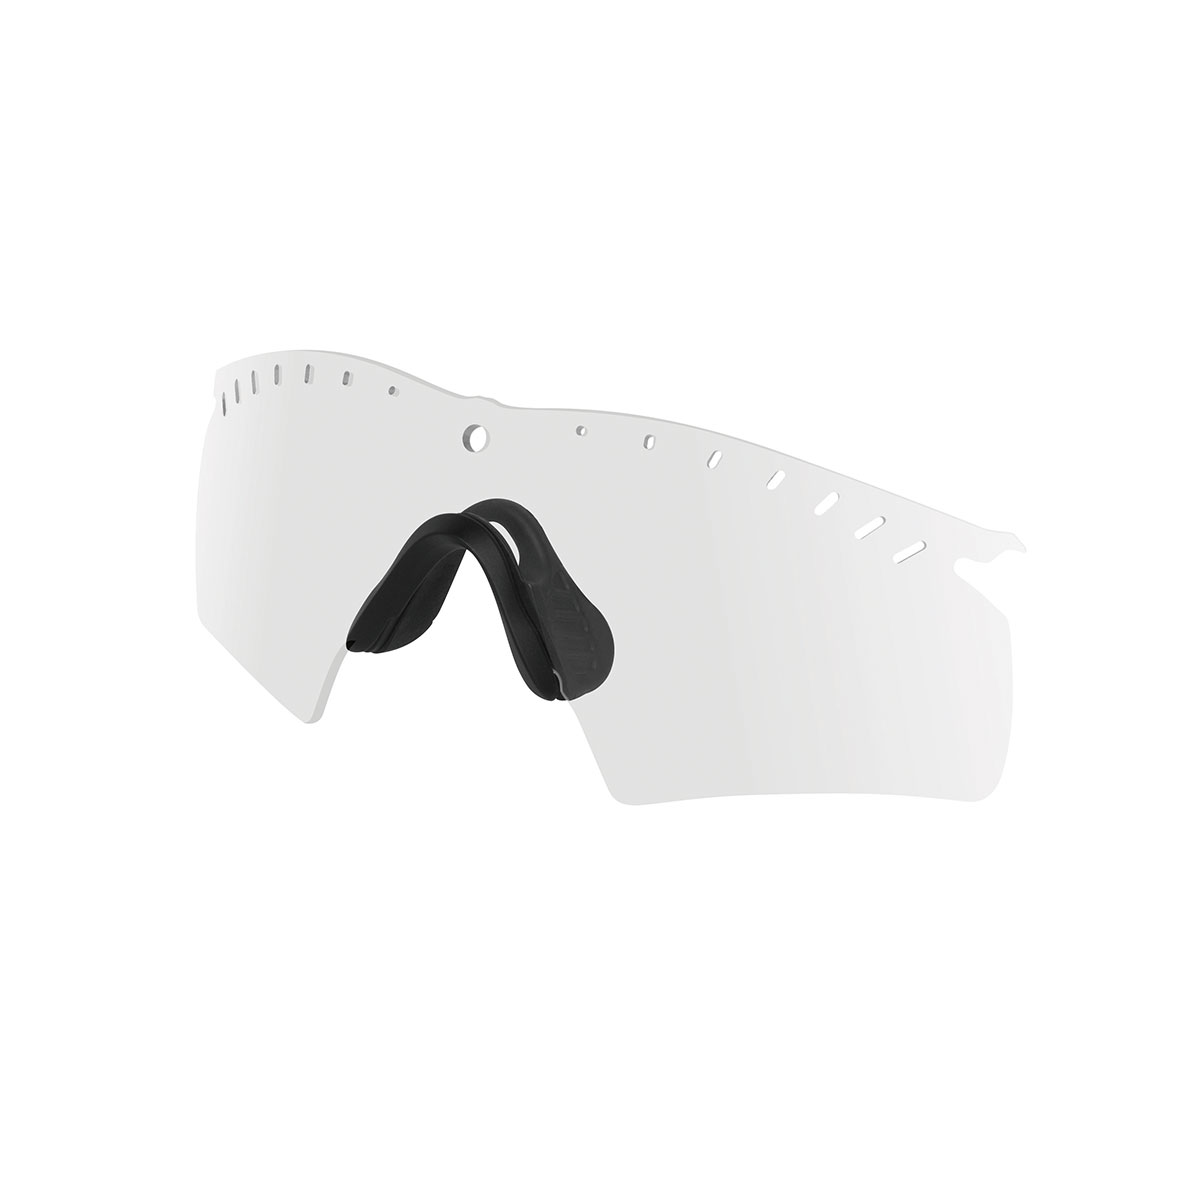 002a0d459f Oakley SI Ballistic M Frame 3.0 Replacement Lens - Hybrid Vented Clear